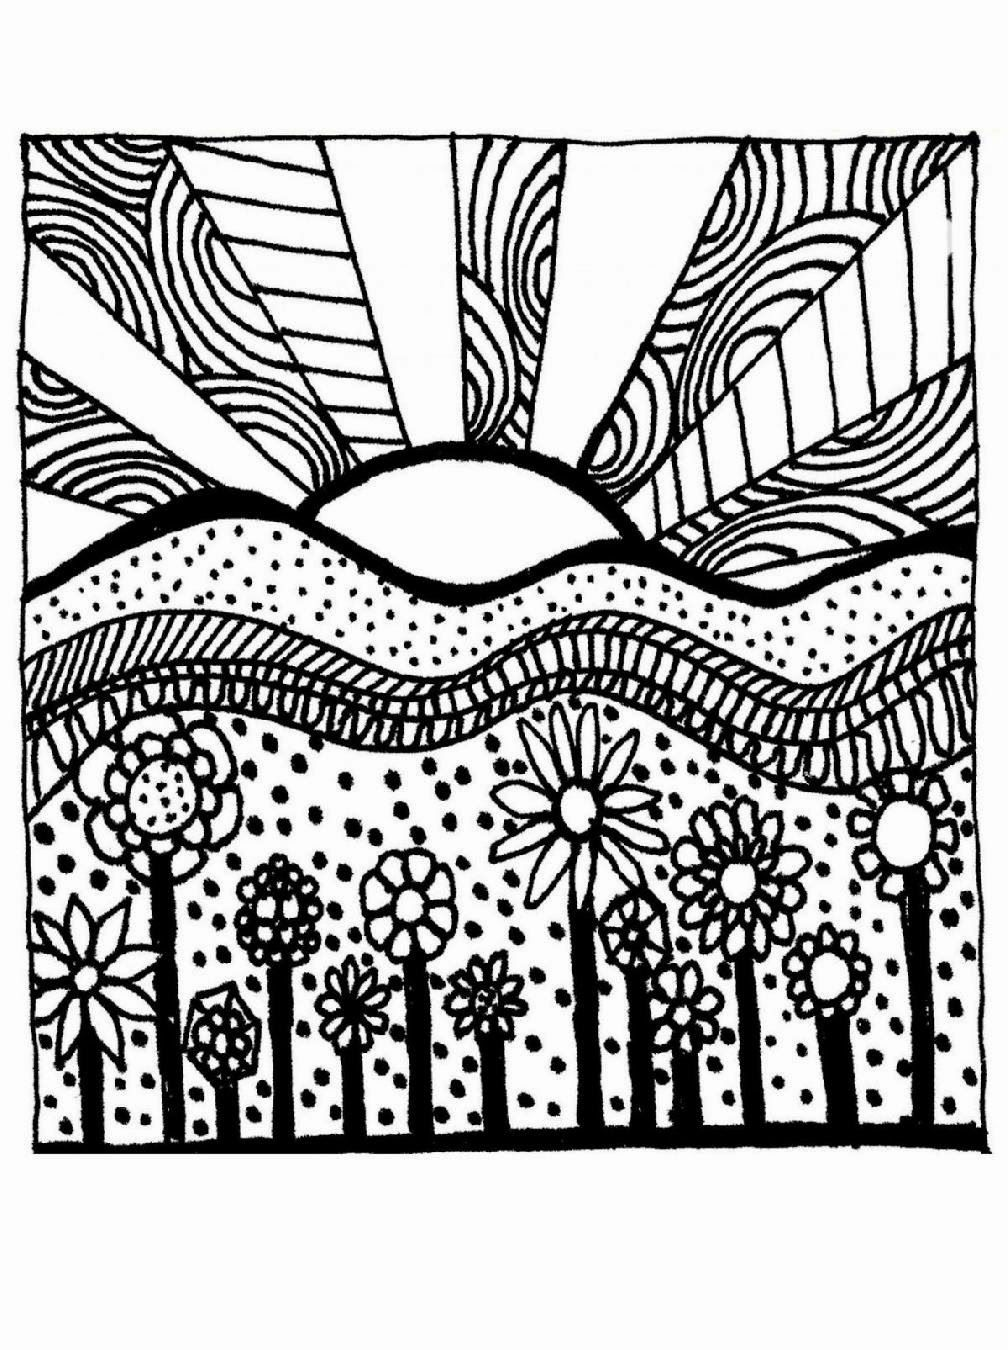 Free coloring pages - Free Coloring Pages For Adults Koloringpages